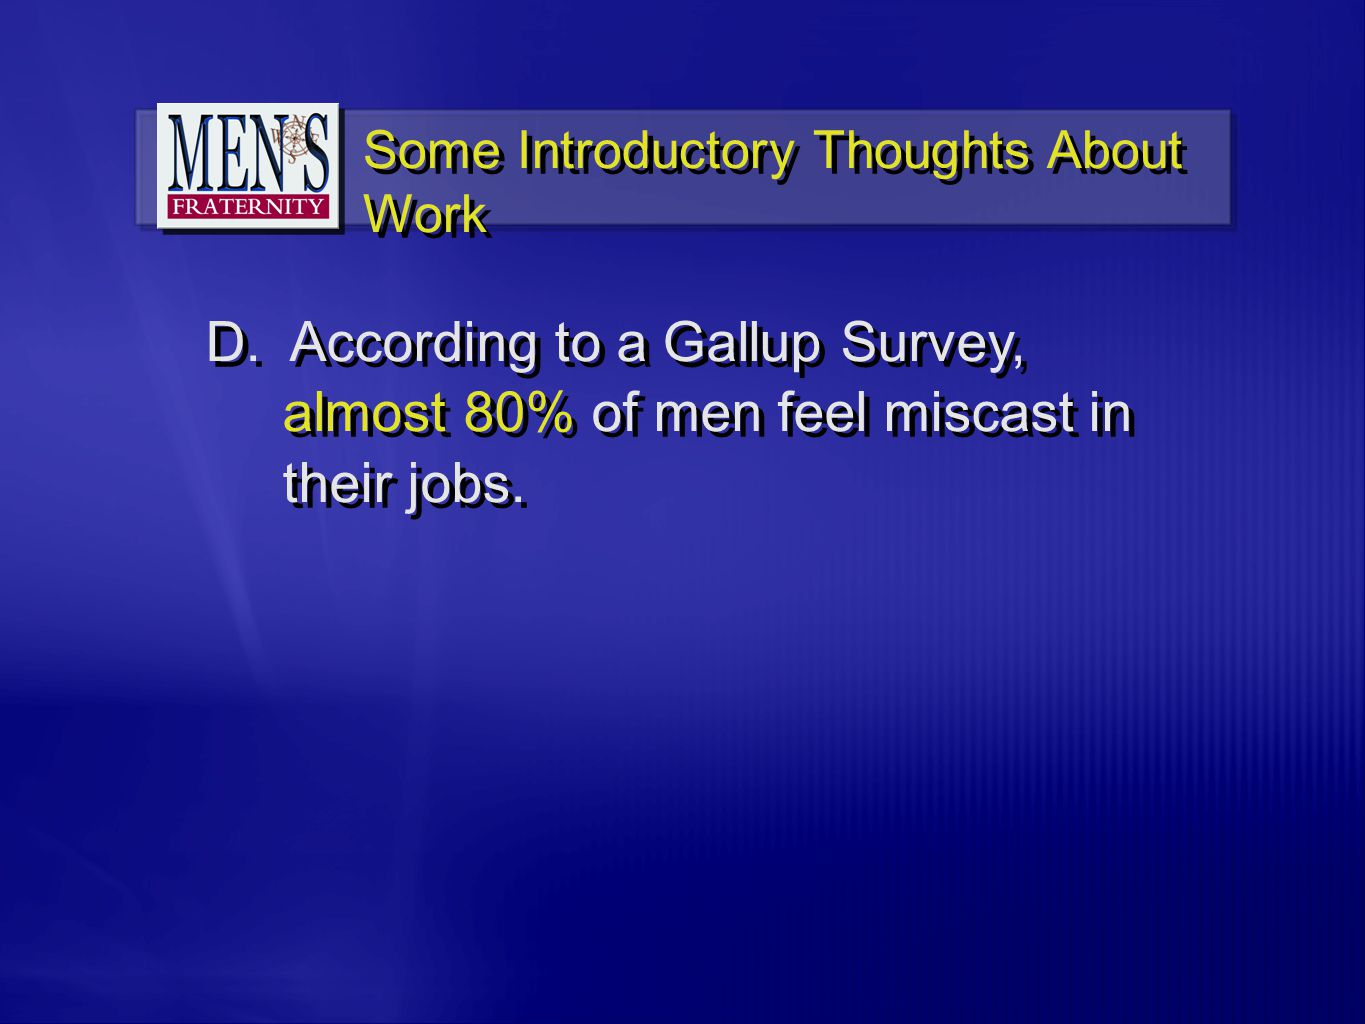 D. According to a Gallup Survey, almost 80% of men feel miscast in their jobs.